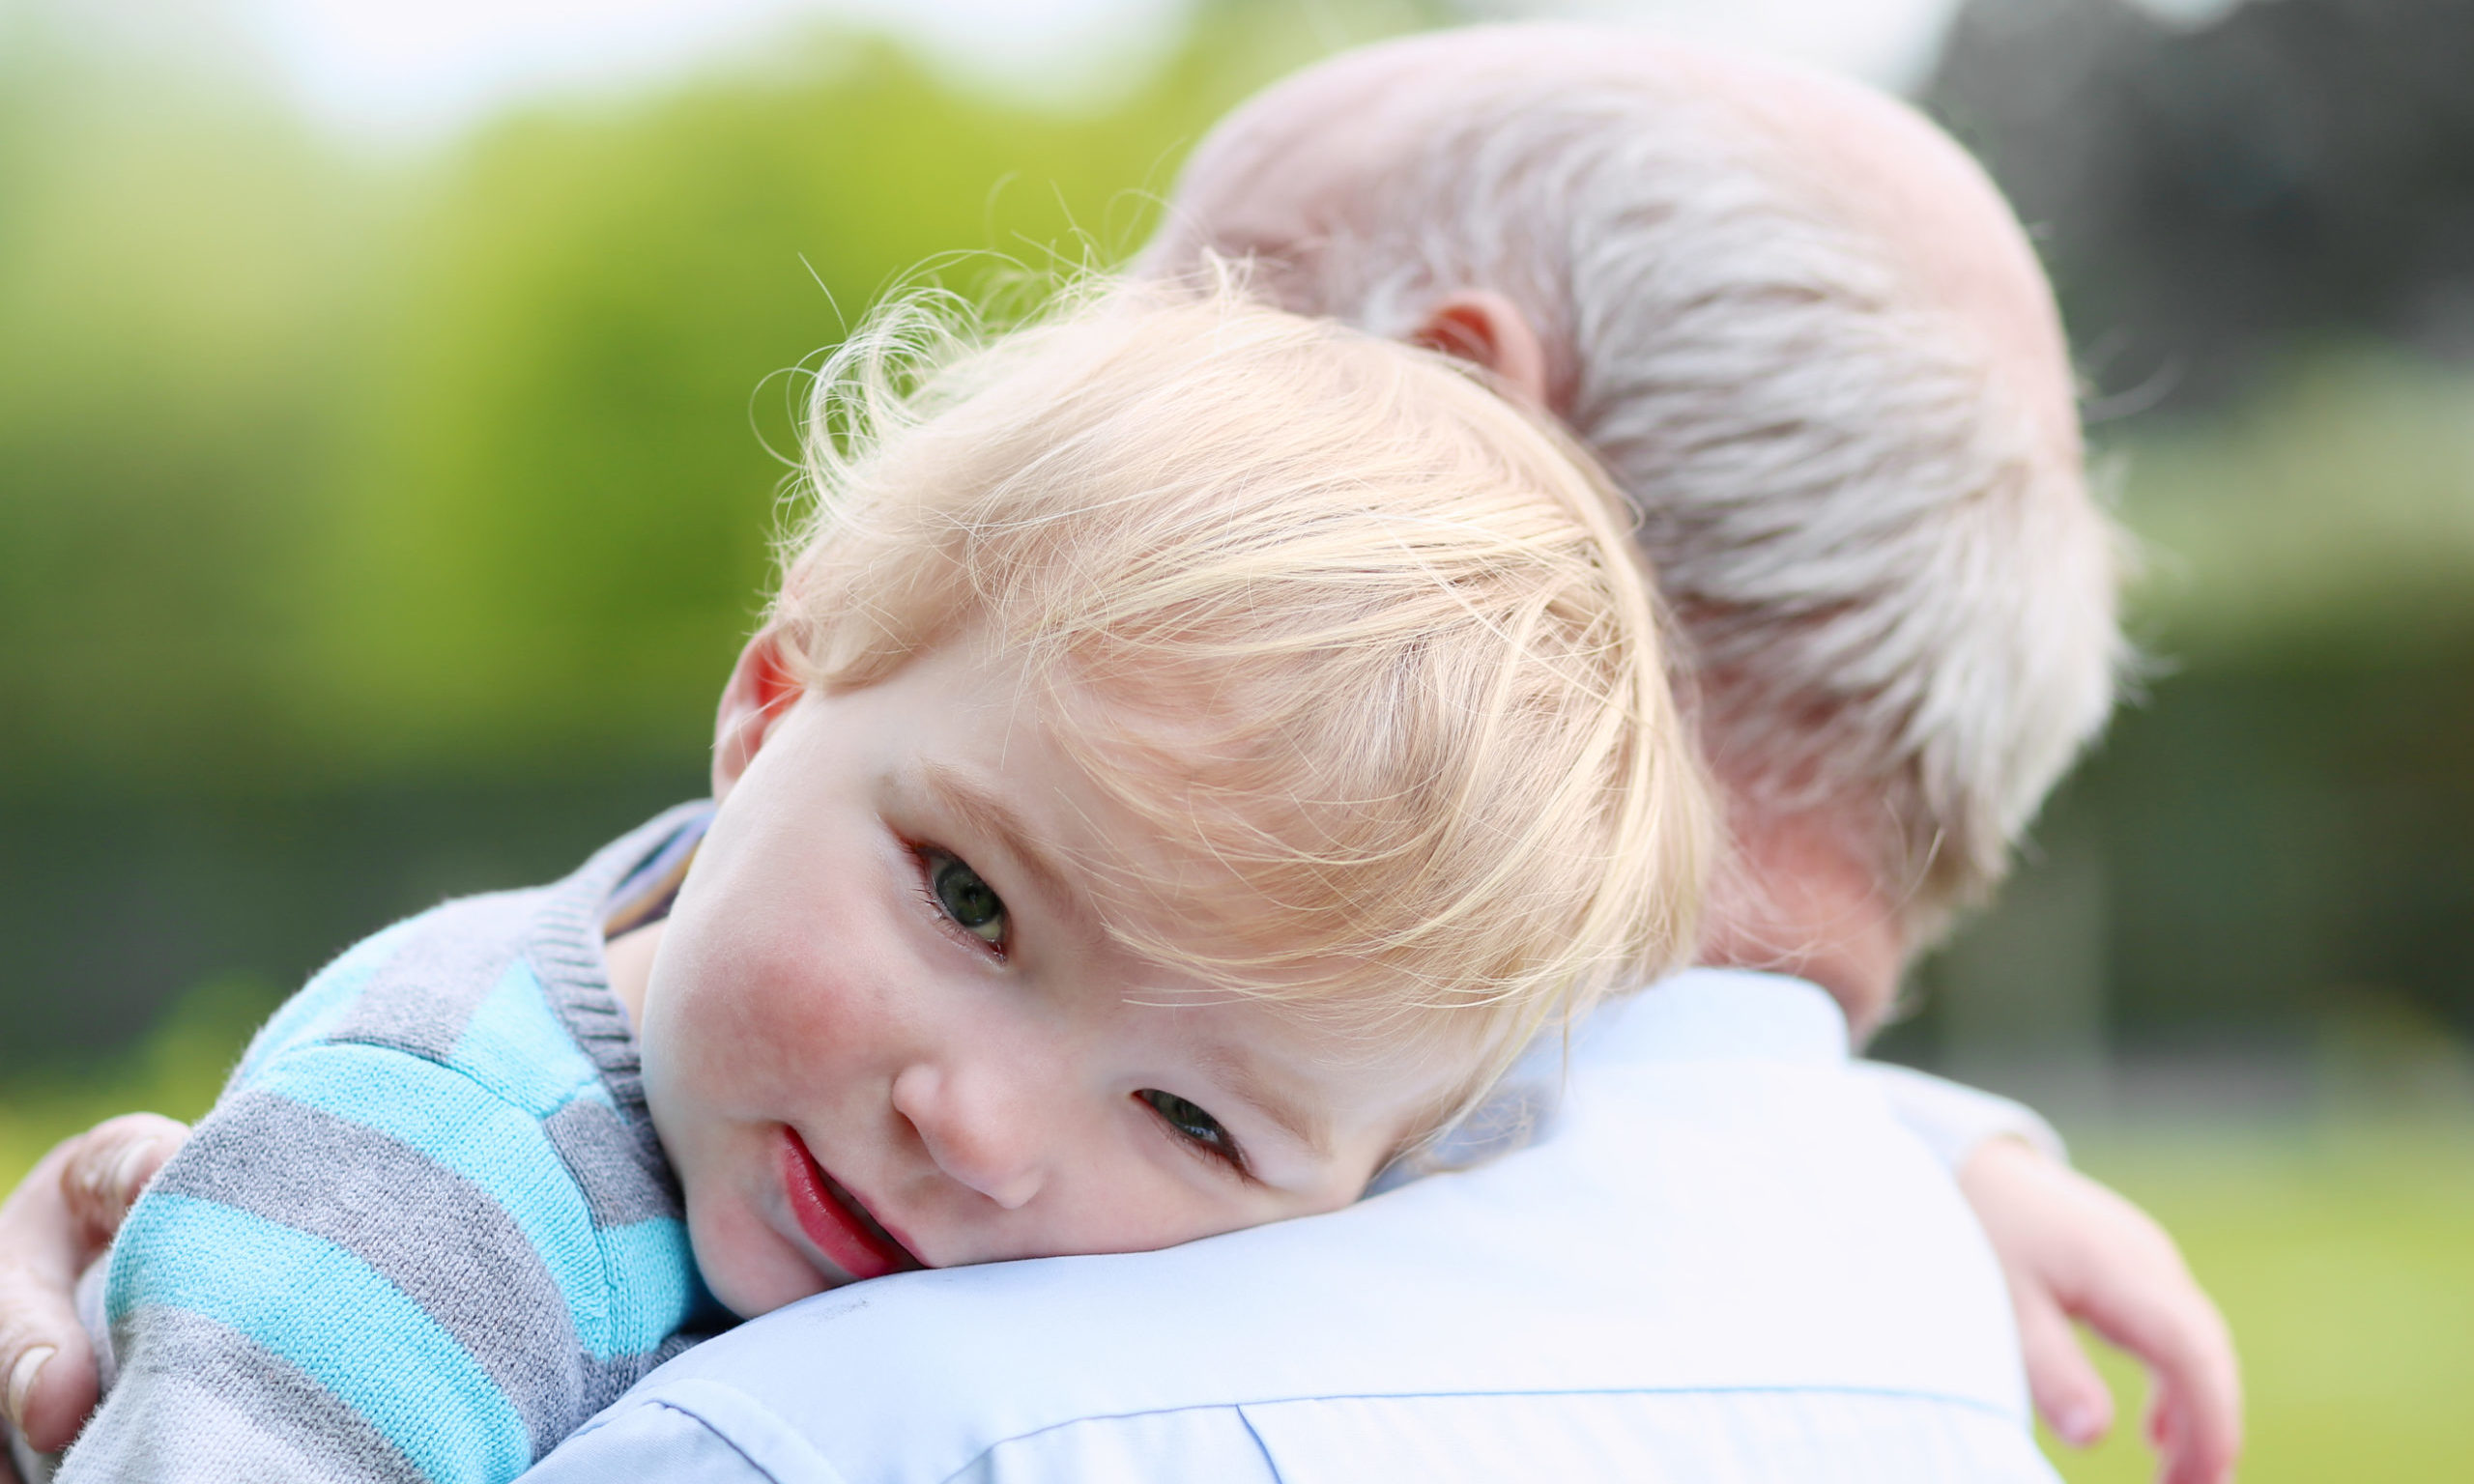 The announcement is good news for grandparents in need of a hug.